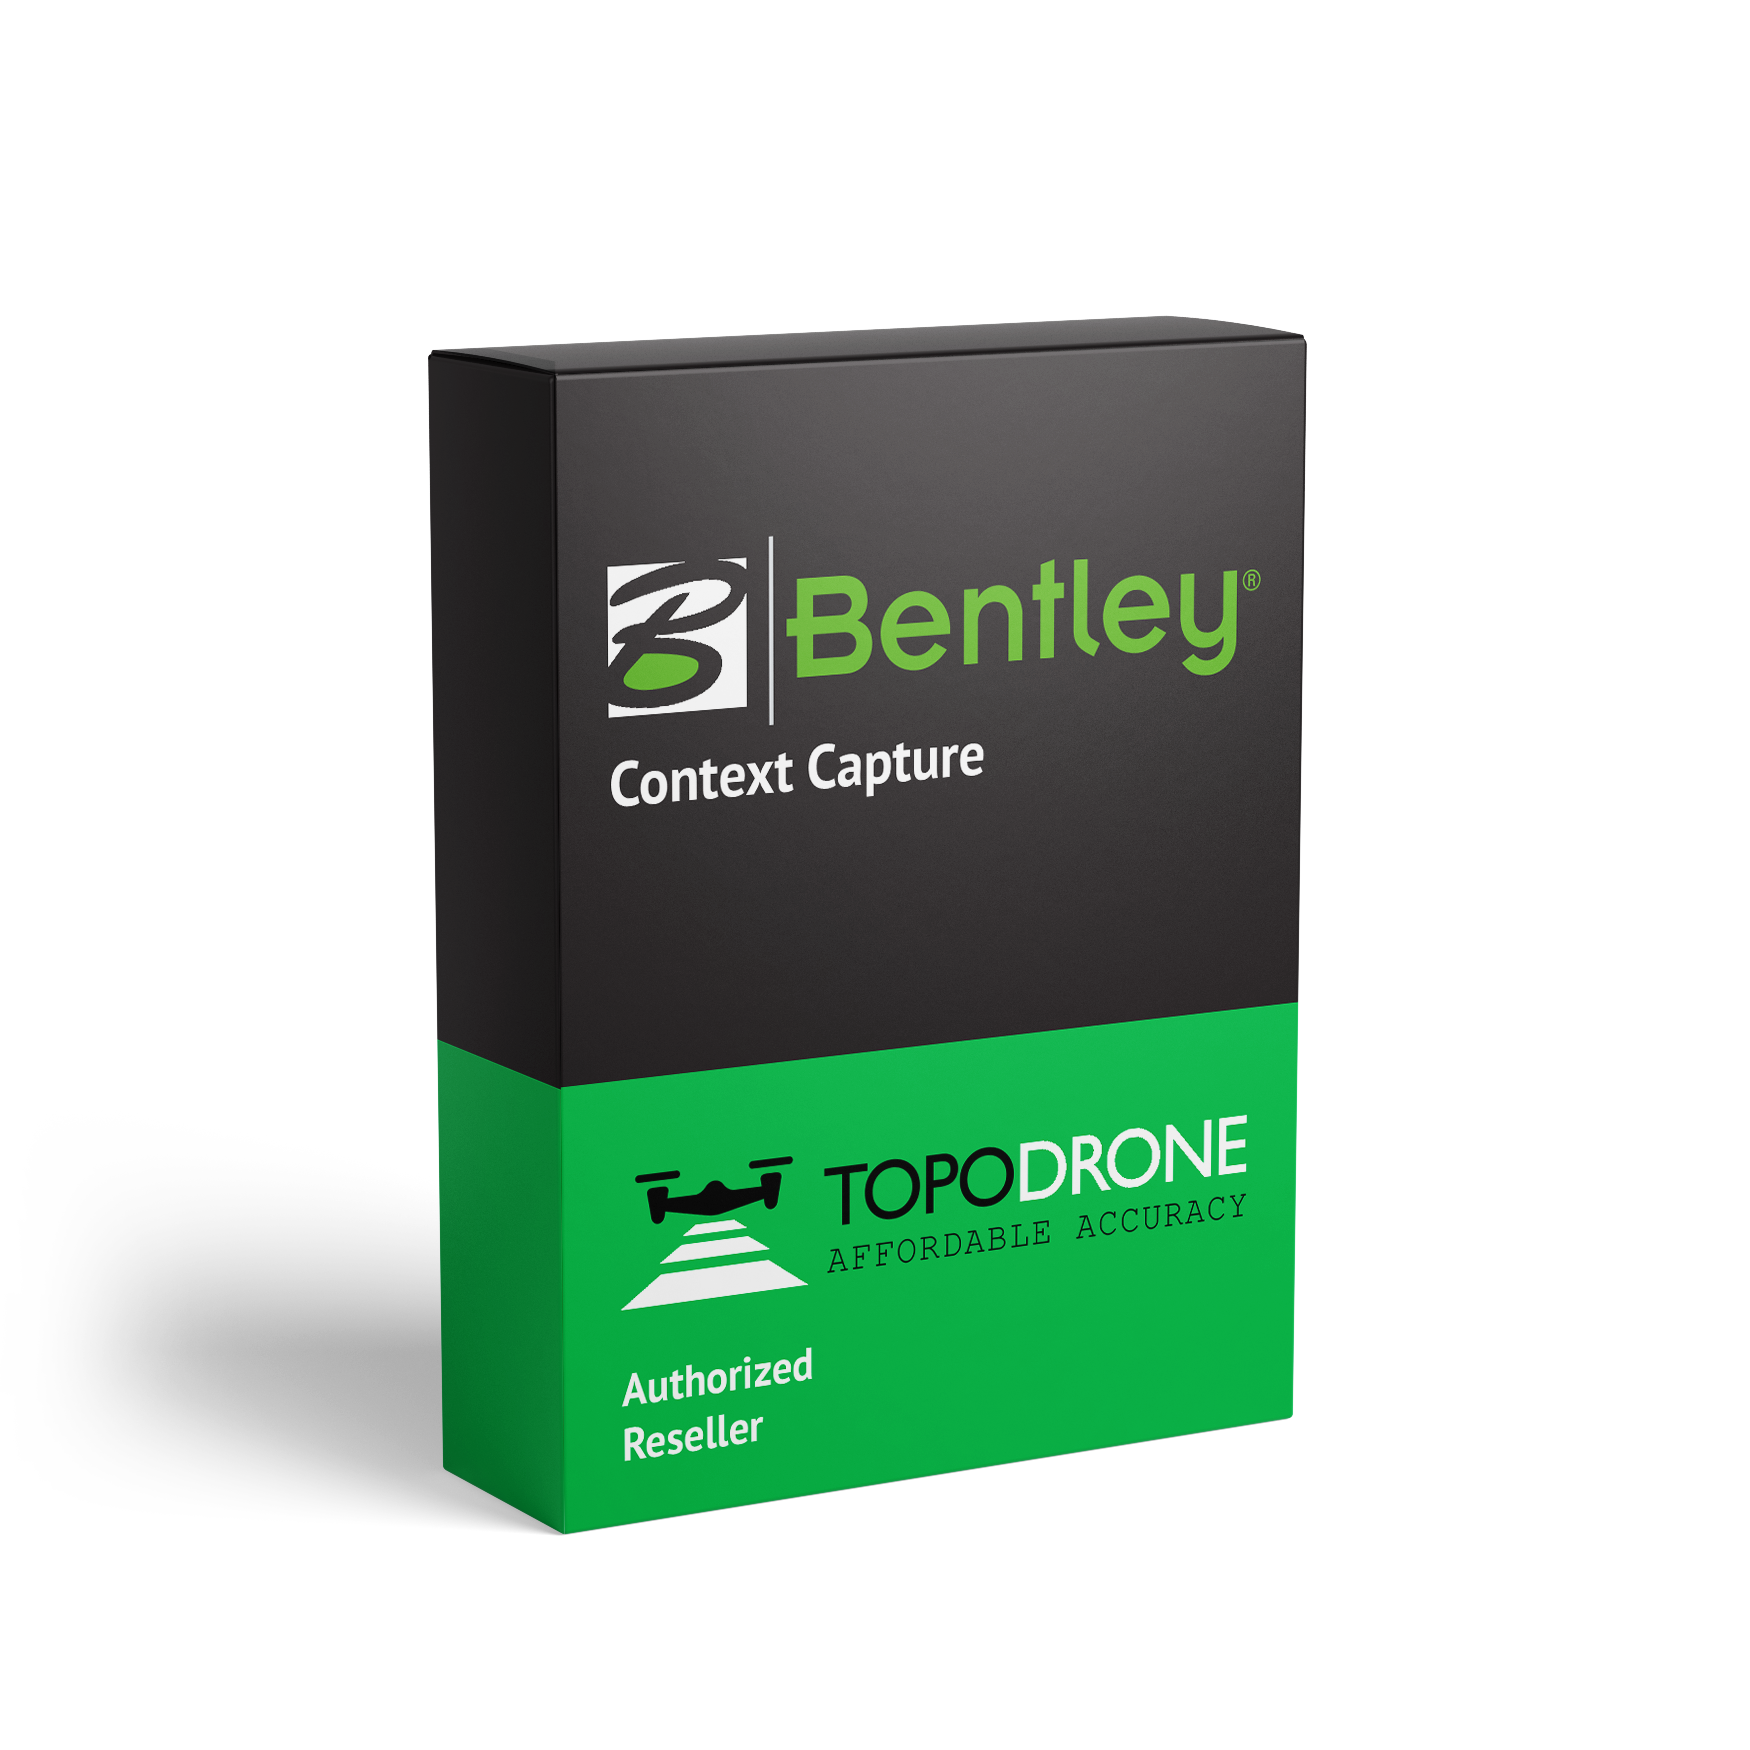 Bentley Context Capture, Perpetual License, 1-Year Support